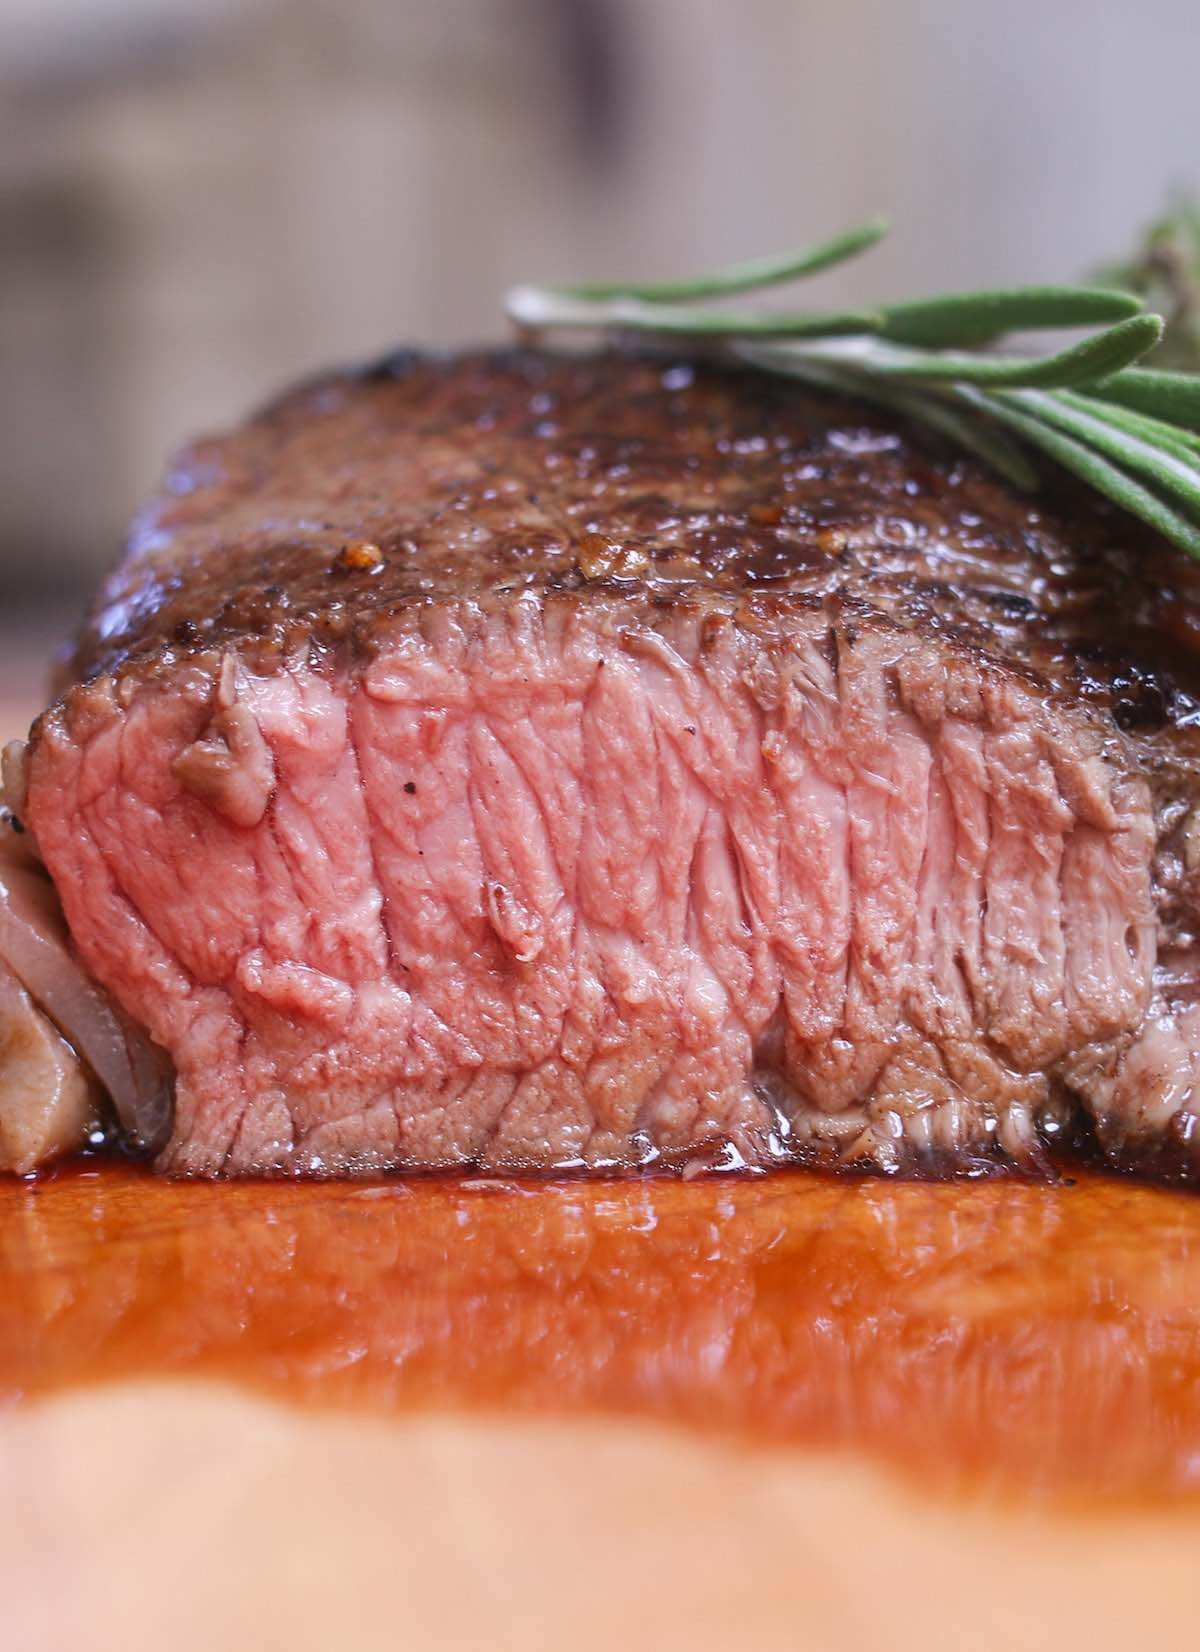 Closeup Of A Cross Section Of Sirloin Cooked To Medium Doneness With A Pale Pink Color And Juicy Texture Sirloin Steaks Sirloin Sirloin Recipes